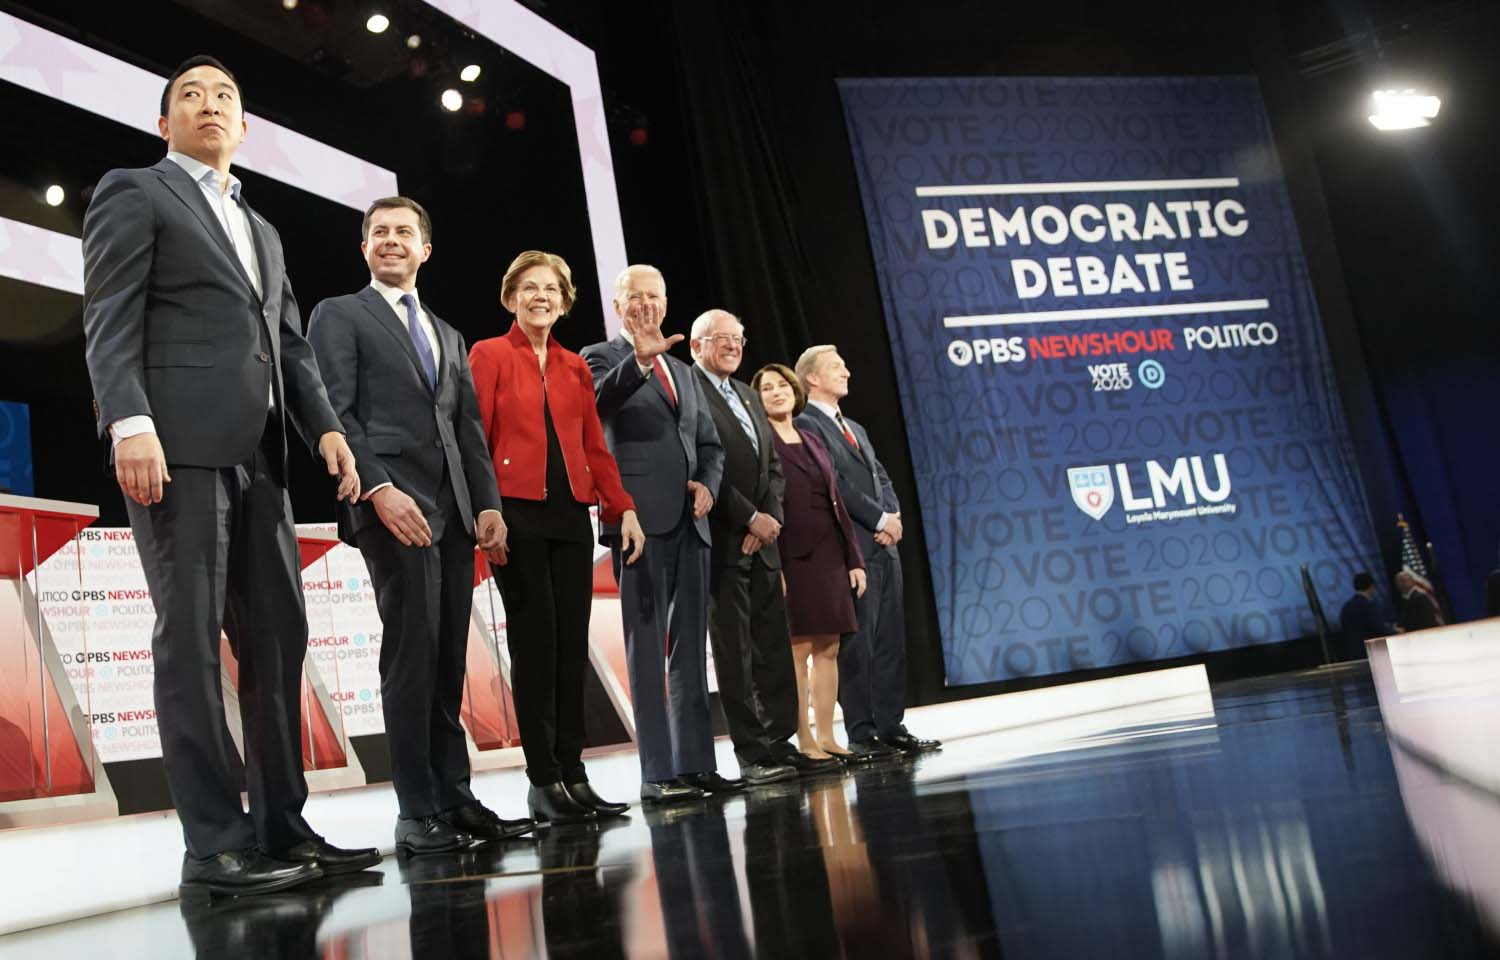 Democratic presidential hopefuls participate in the sixth Democratic primary debate of the 2020 presidential campaign season co-hosted by PBS NewsHour and Politico at Loyola Marymount University in Los Angeles on Dec. 19, 2019.